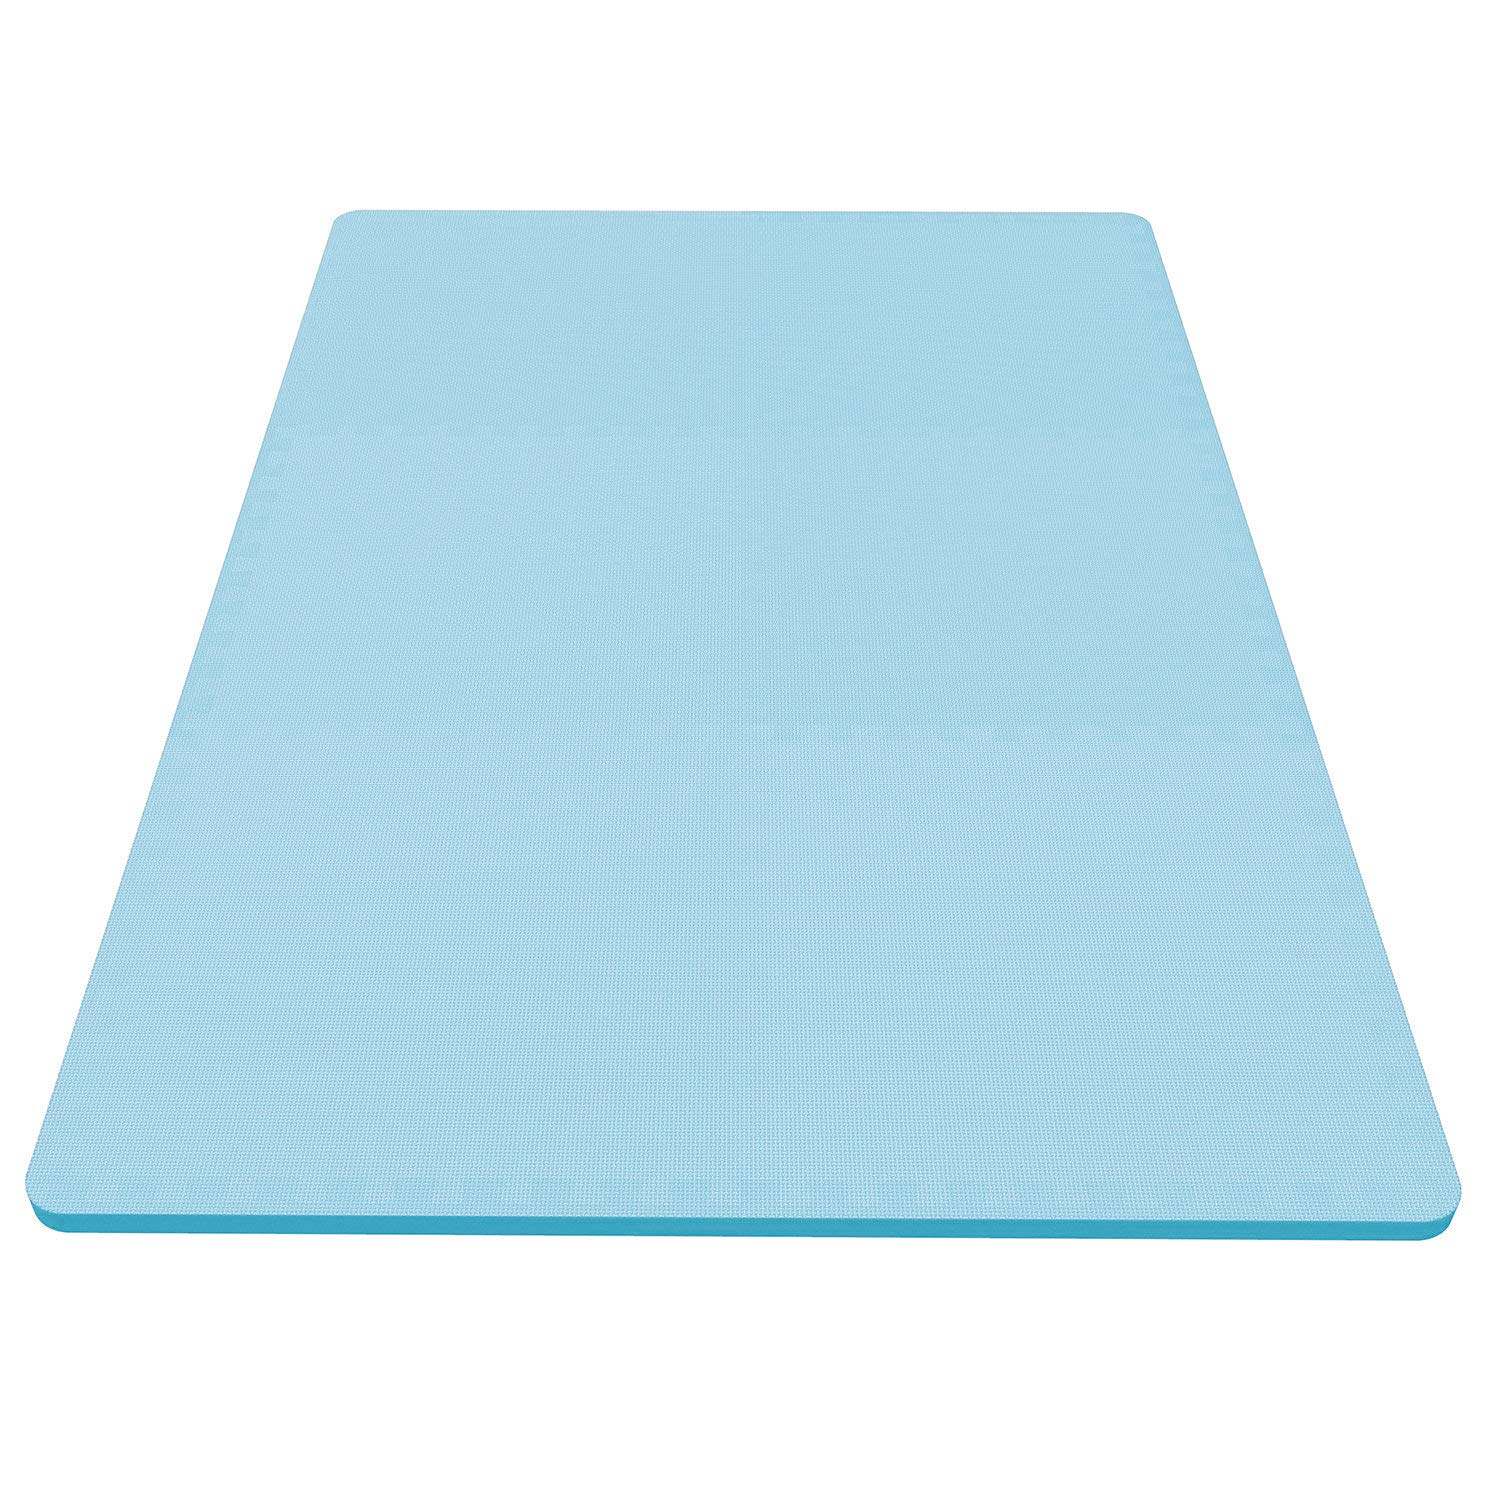 LEVOIT Puzzle Exercise Mat, Premium EVA Foam Interlocking Tiles, Protective Flooring for Gym Equipment and Cushions for Workouts, 24 SQ FT (6 Tiles, 12 Borders) (Blue) by LEVOIT (Image #4)